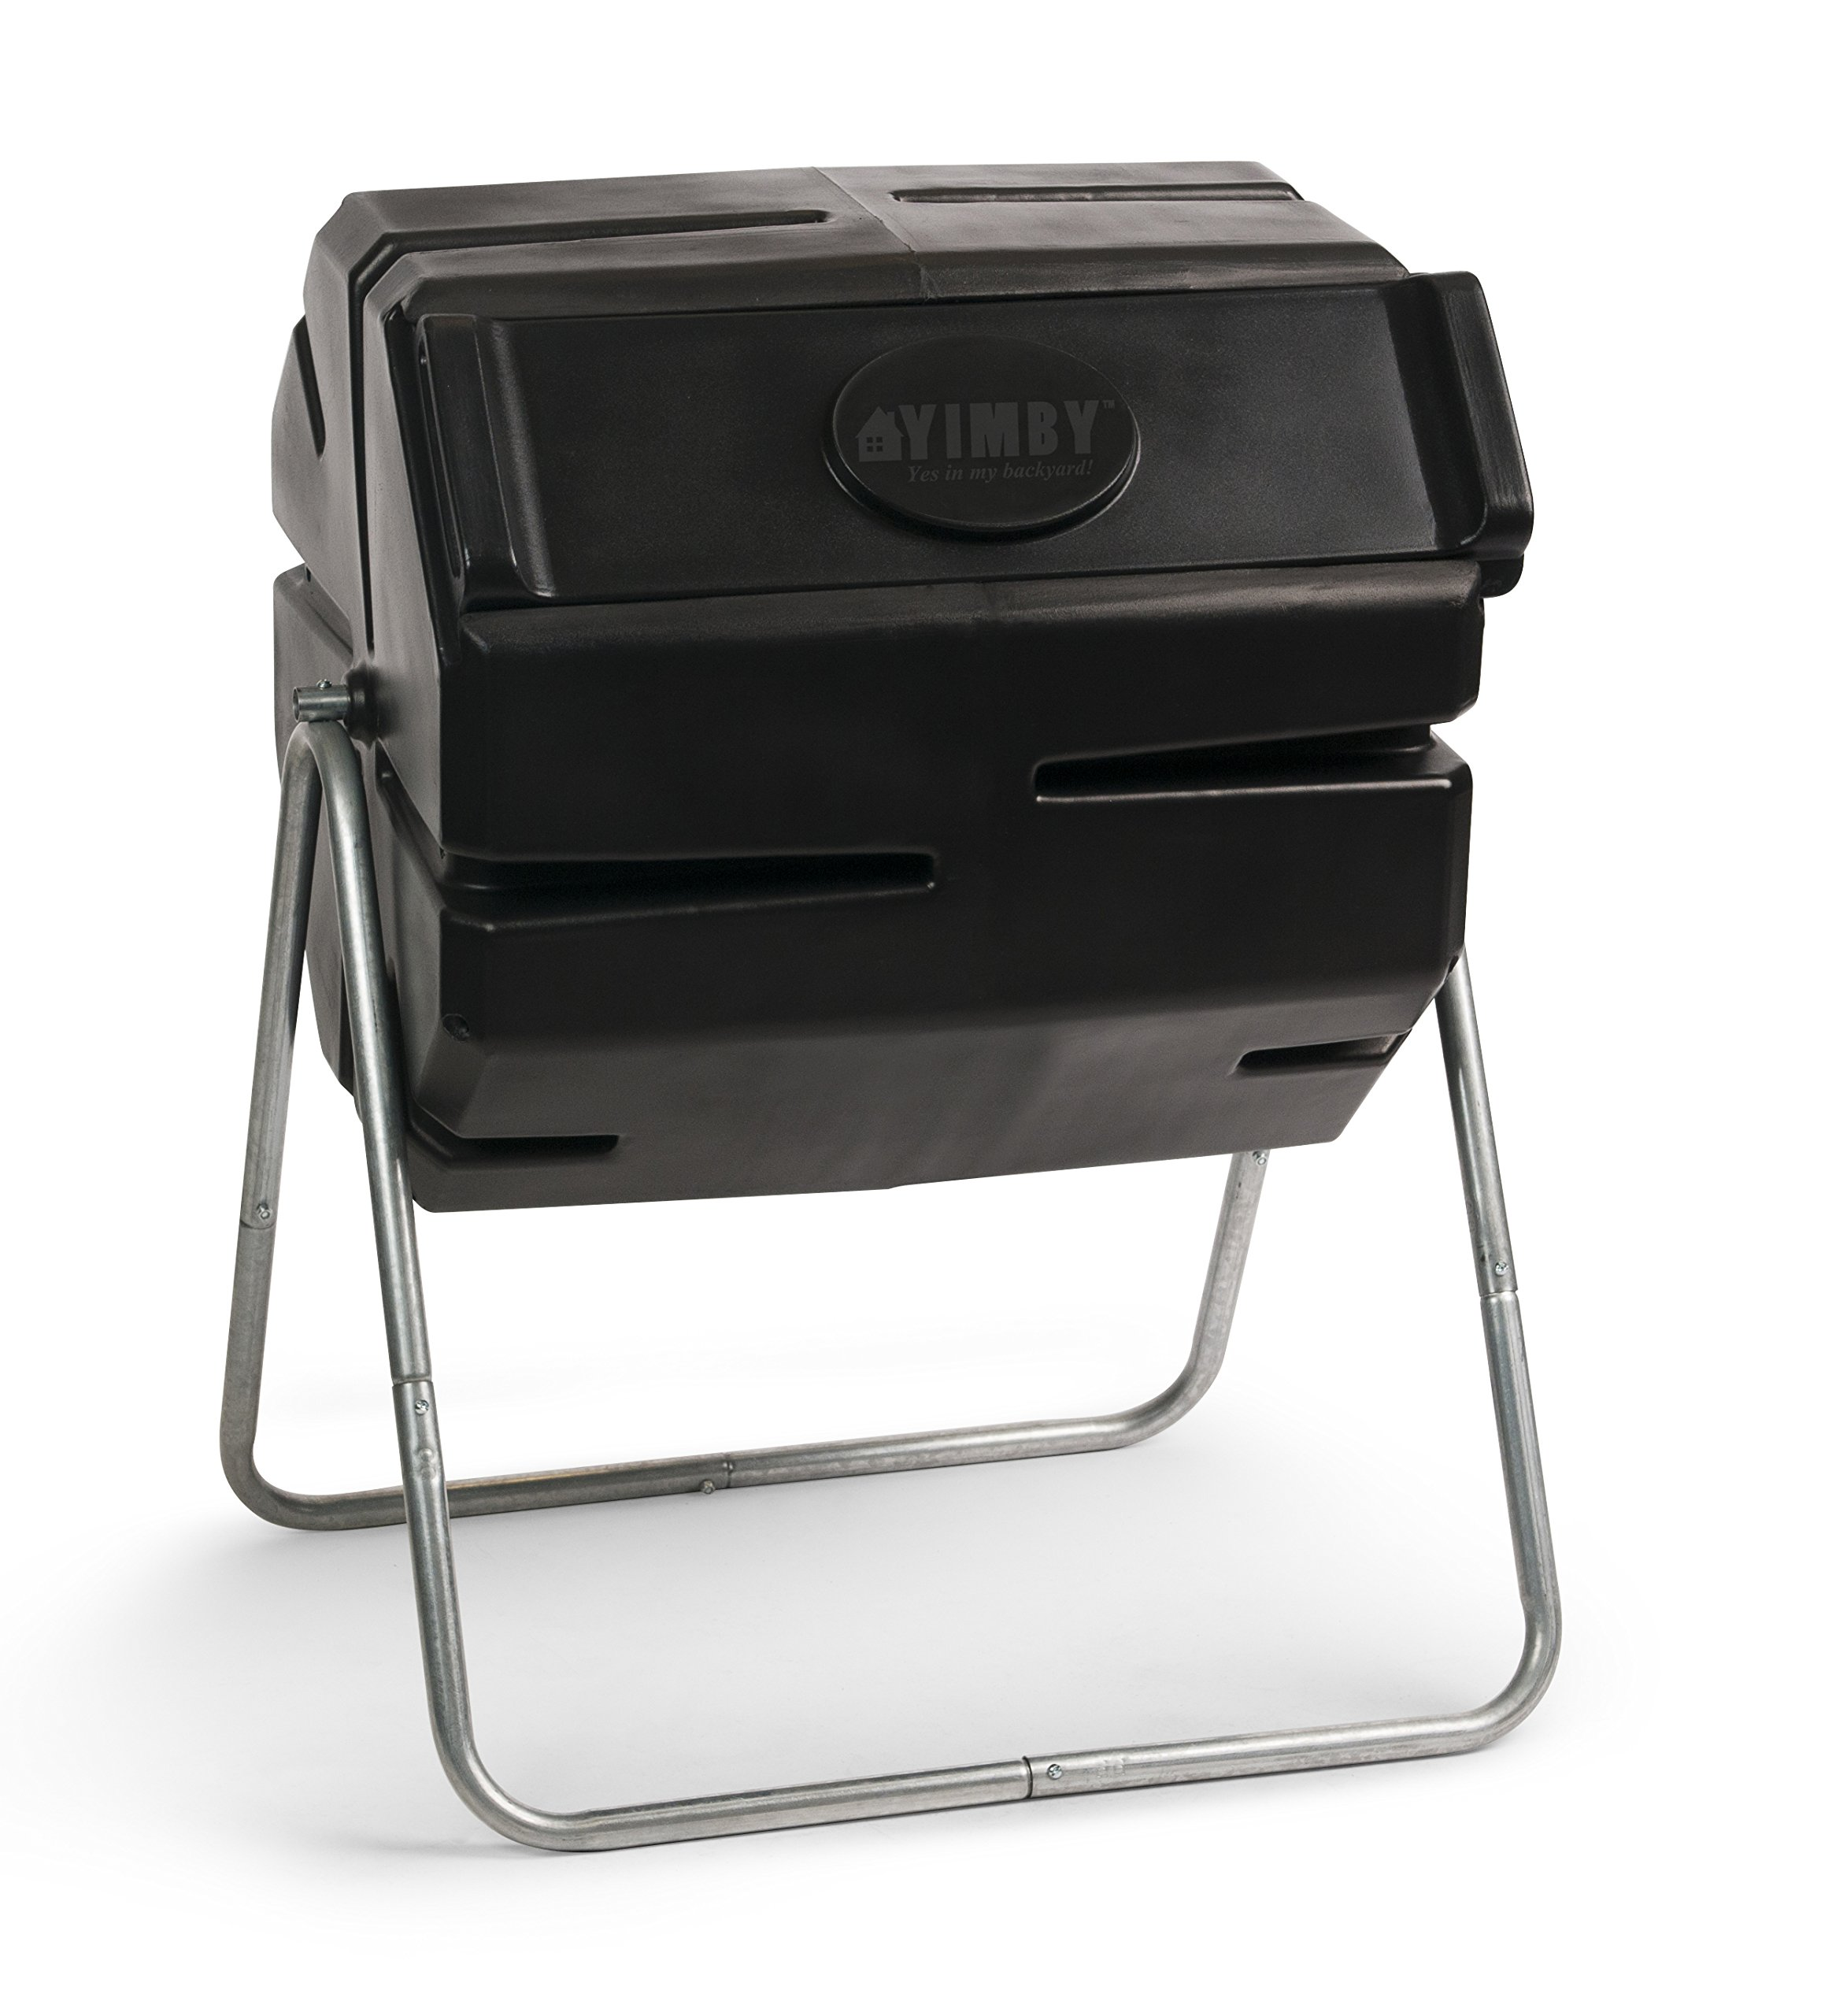 Compost Tumbler by Minuteman International